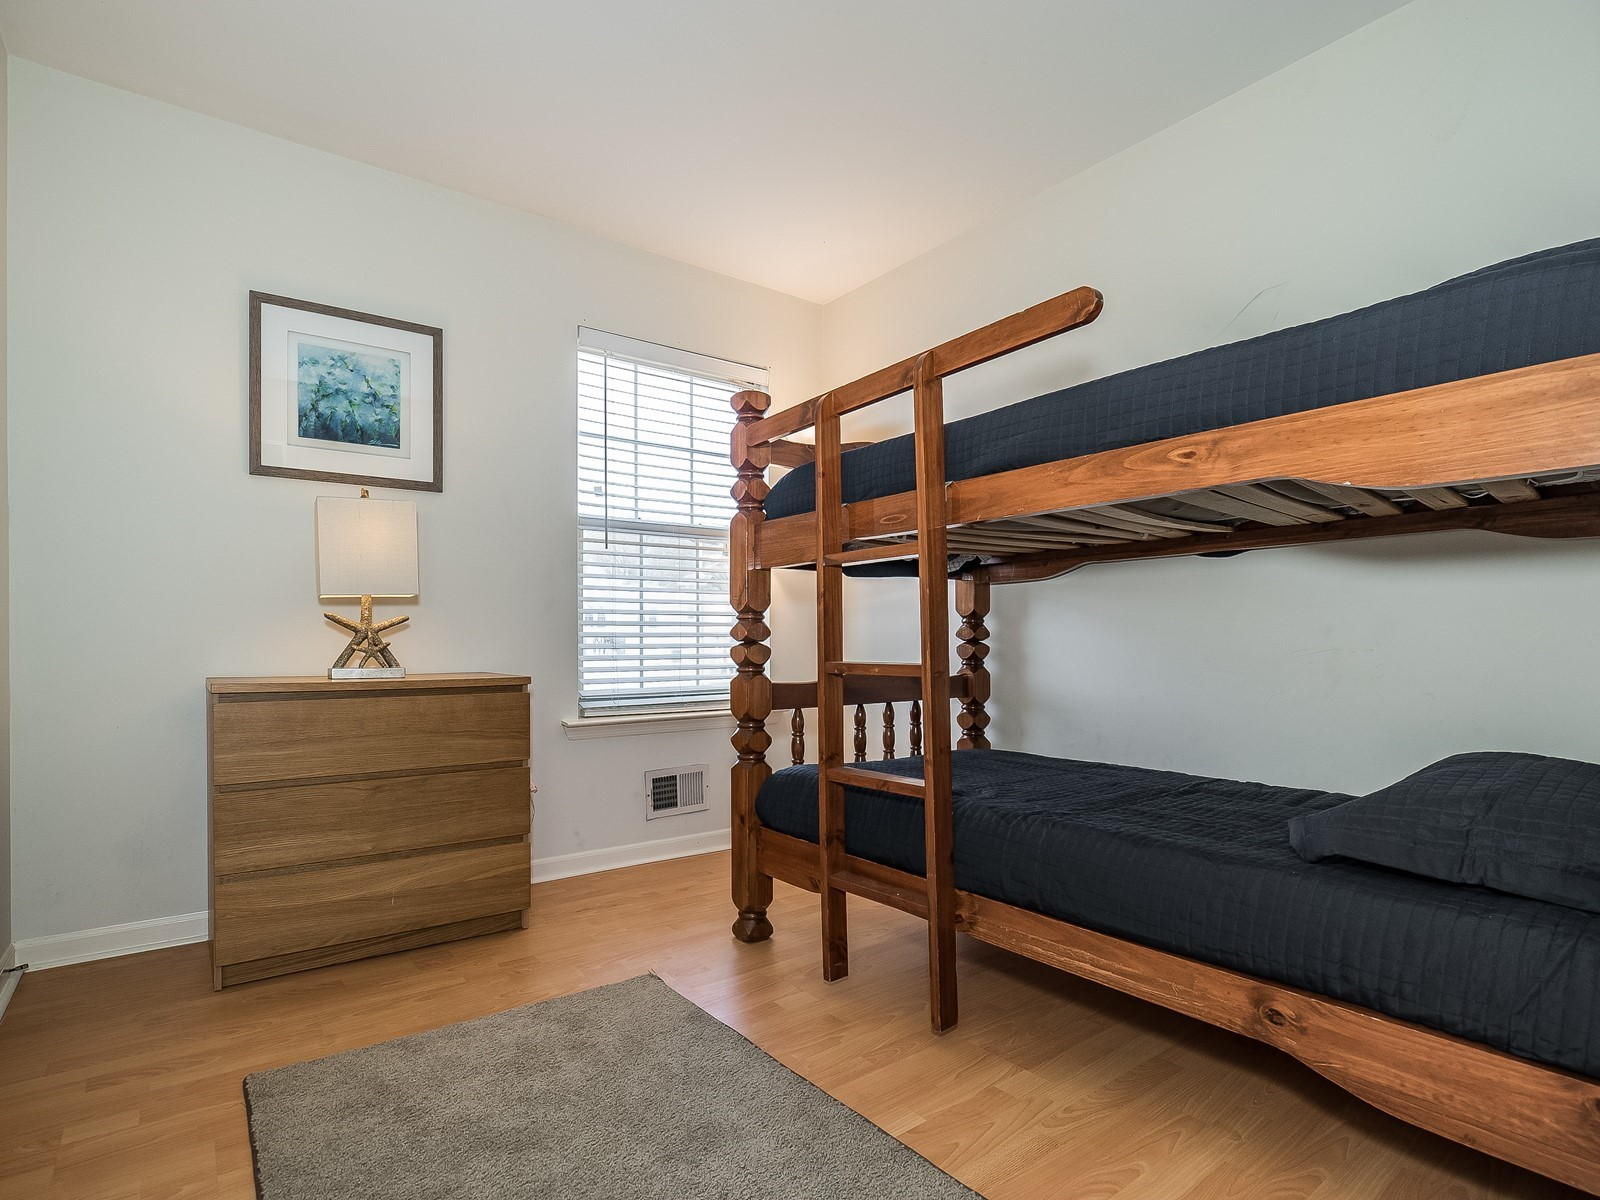 Woodbridge 29 Temporary Housing bedroom 3 with twin sized bunk beds